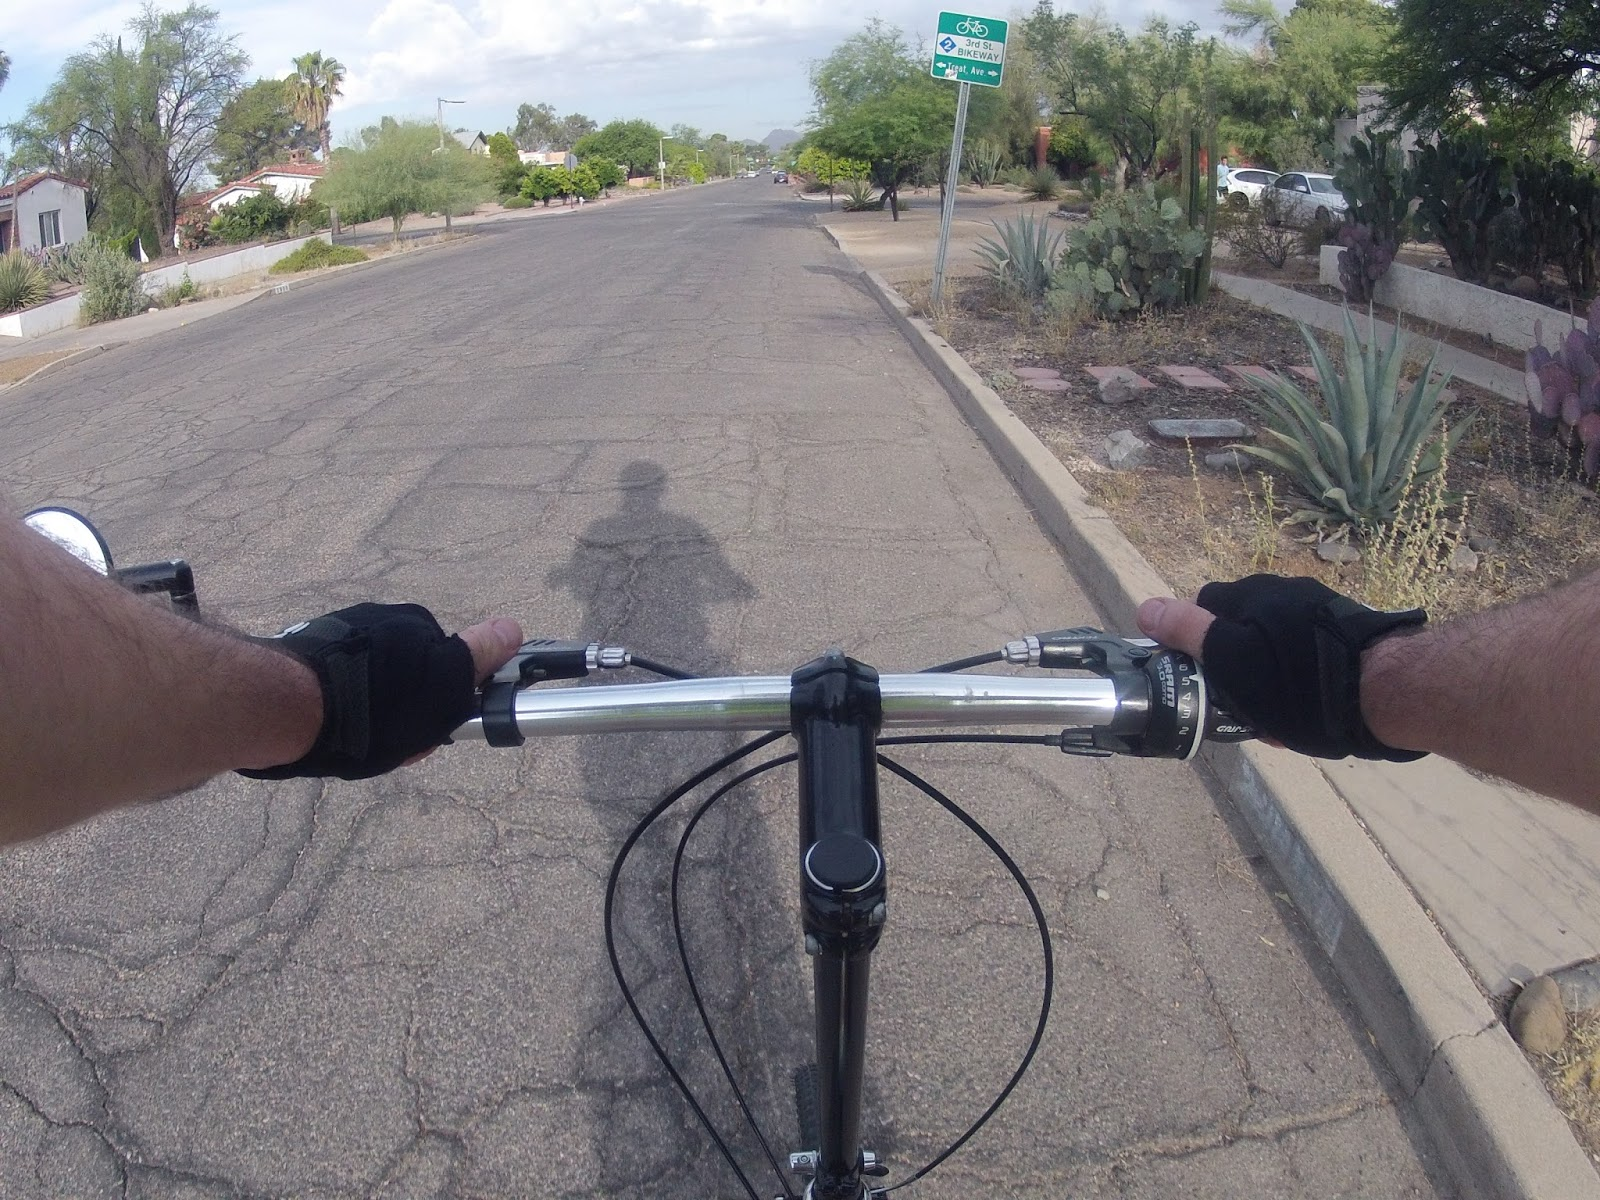 bike routes are also marked by signs where the bike routes intersect